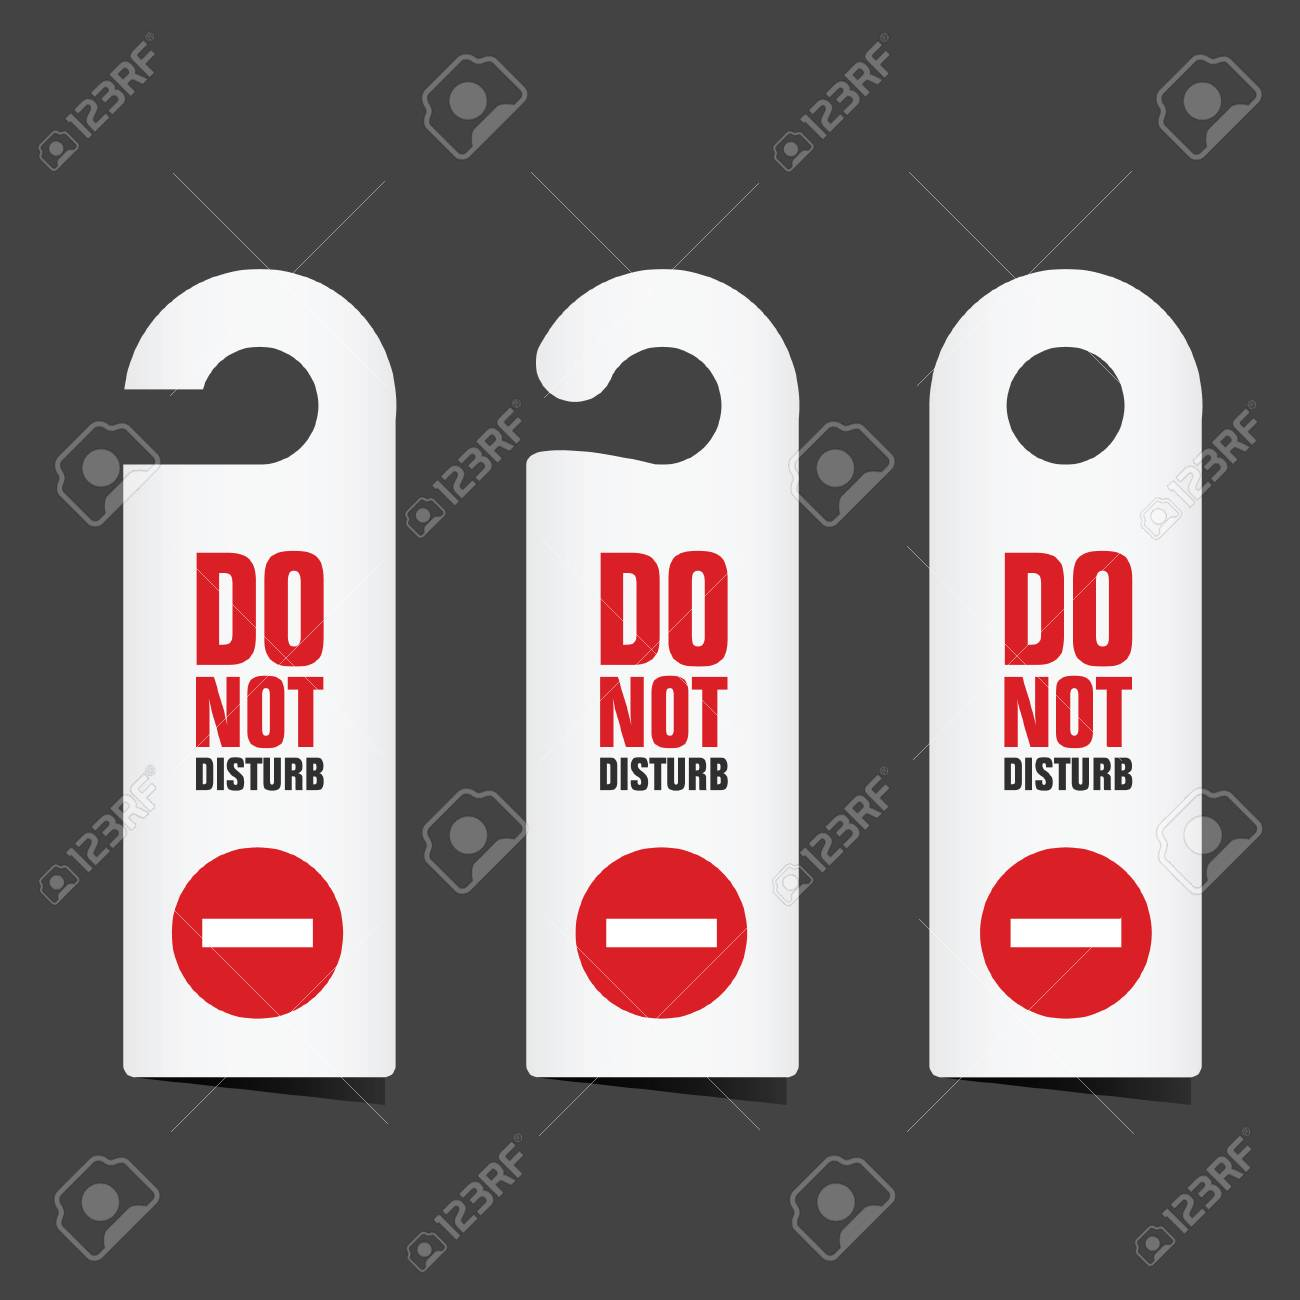 do not disturb sign illustration on grey backgroud royalty free